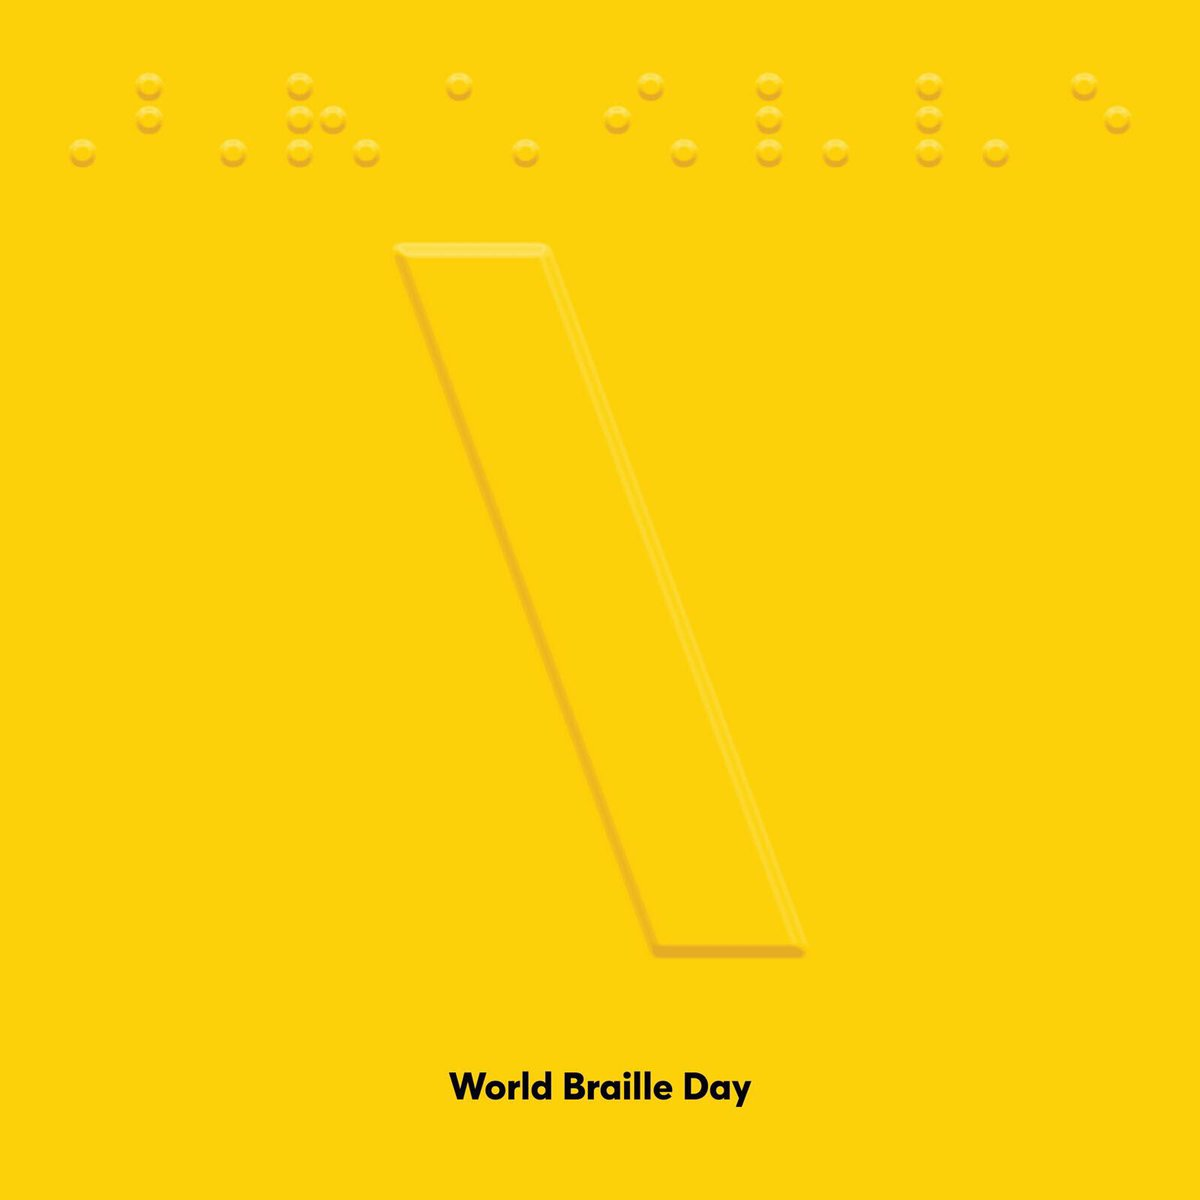 Today is #worldbrailleday which celebrates the life and achievements of Louis Braille who lighted the way of millions of blind people to be educated  #tbwa #advertisingagency #louisbraille #kuwait #backslash #yellow https://t.co/HdbKcqeGyh